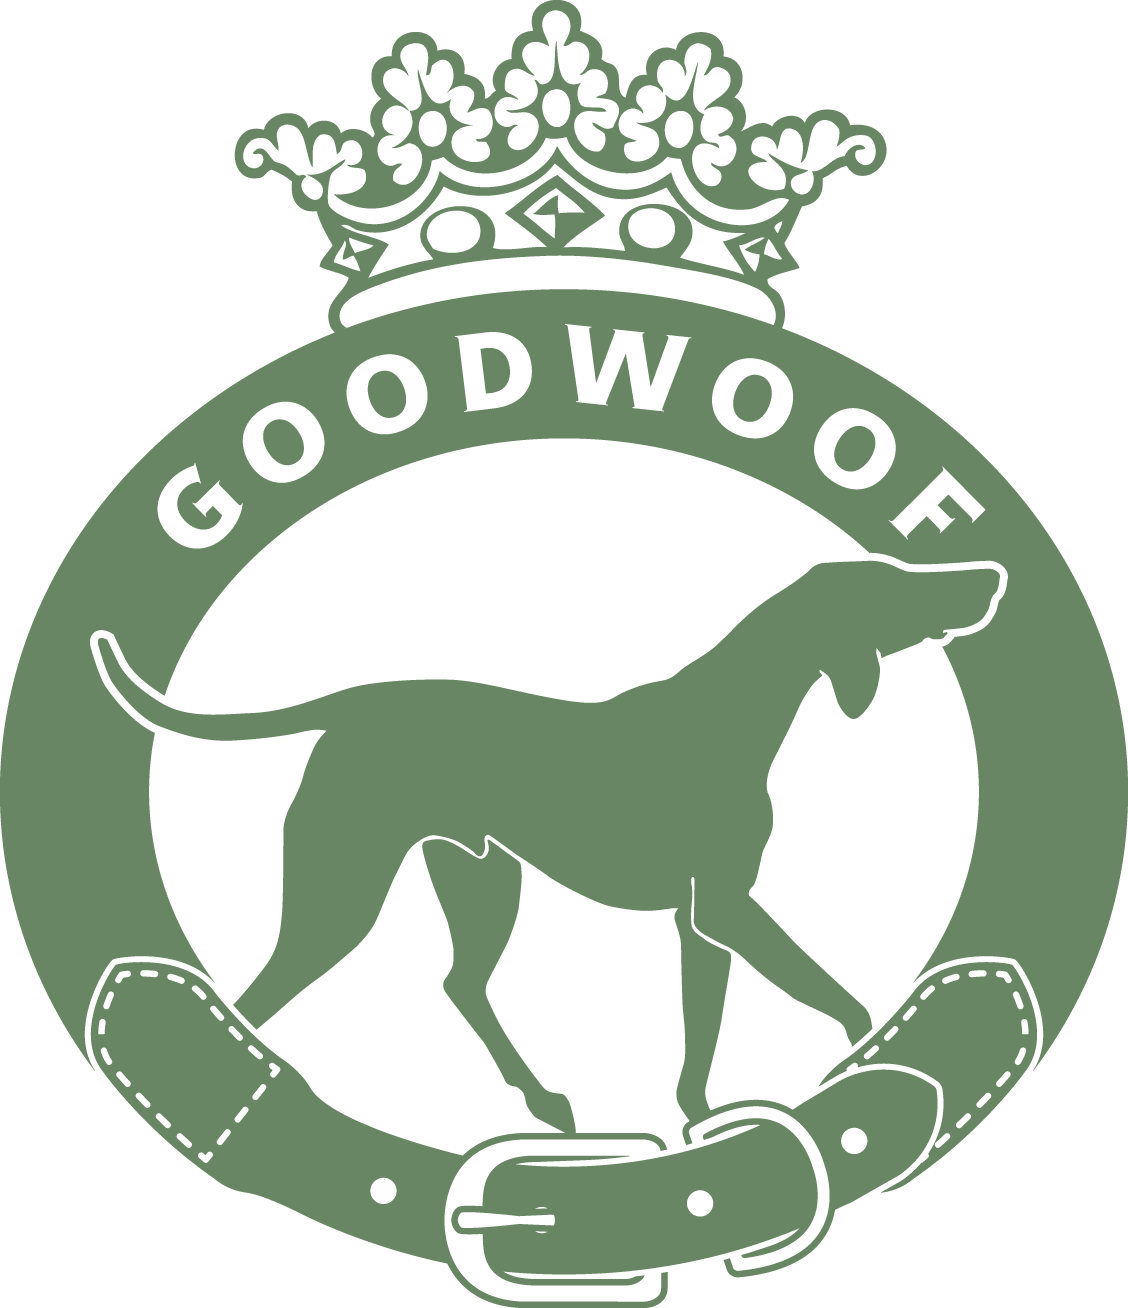 Goodwoof